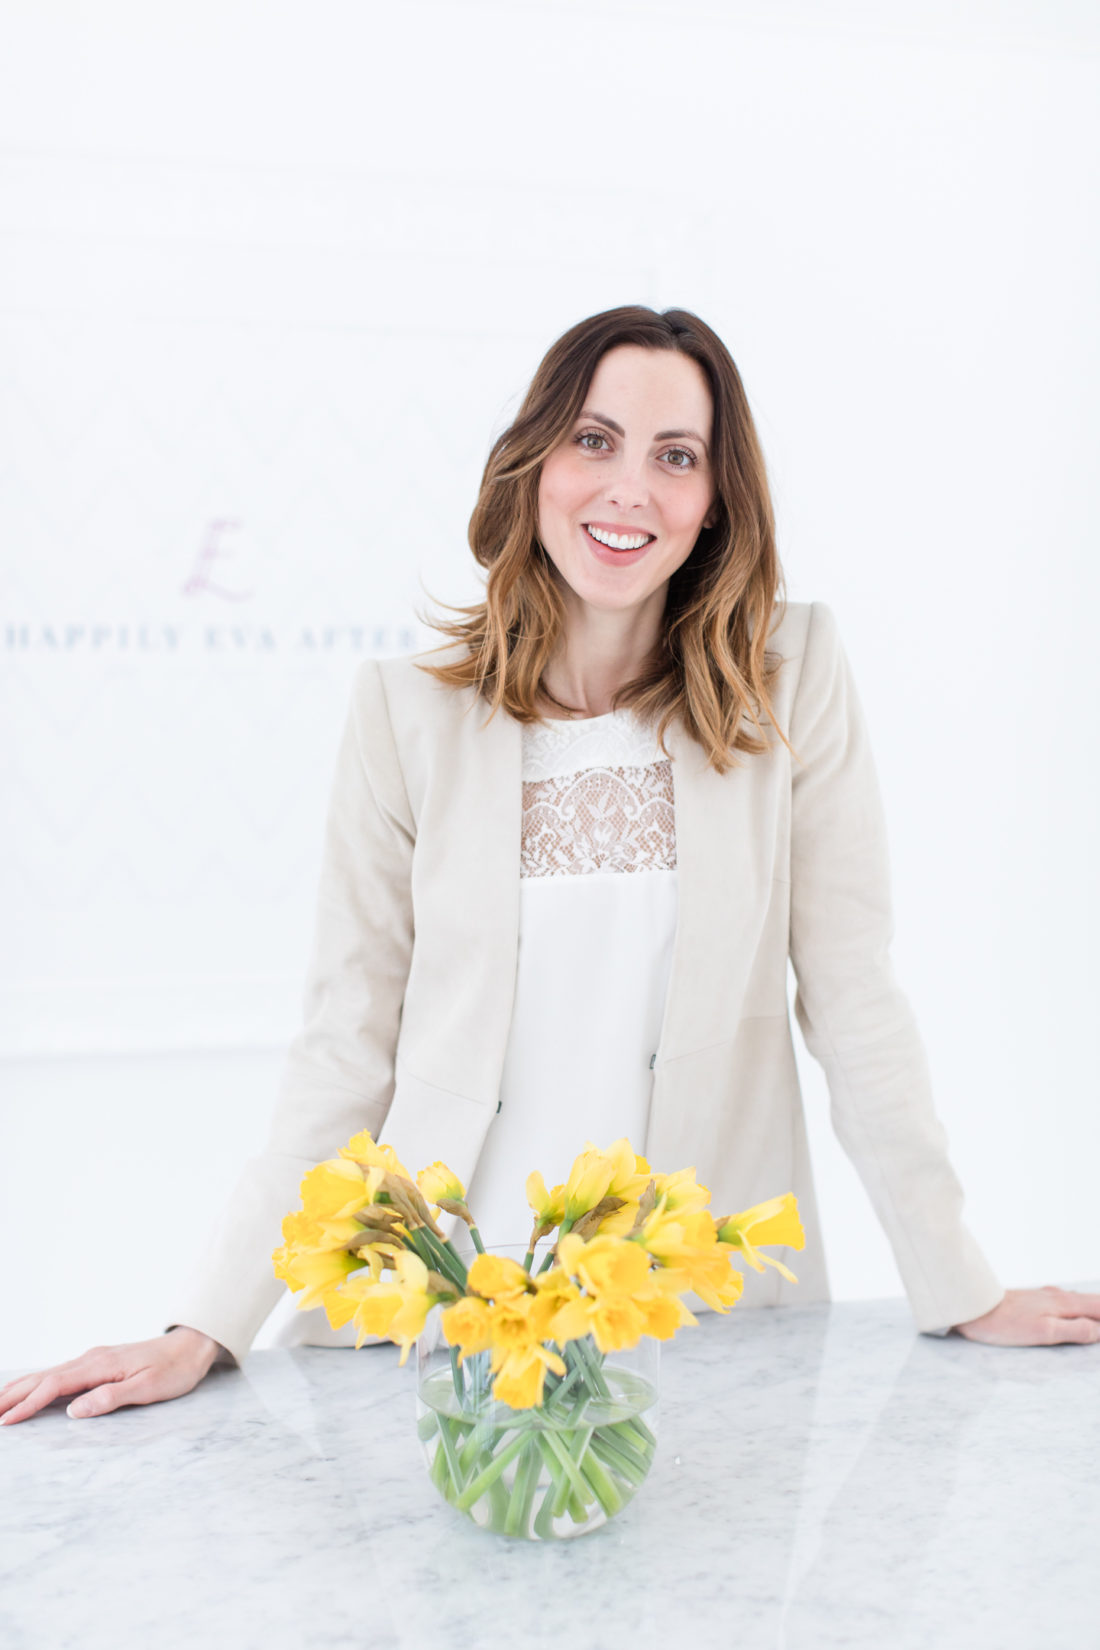 Eva Amurri Martino wears a white camisole top and tan blazer, and stands in the happily eva after studio with a bowl of daffodils